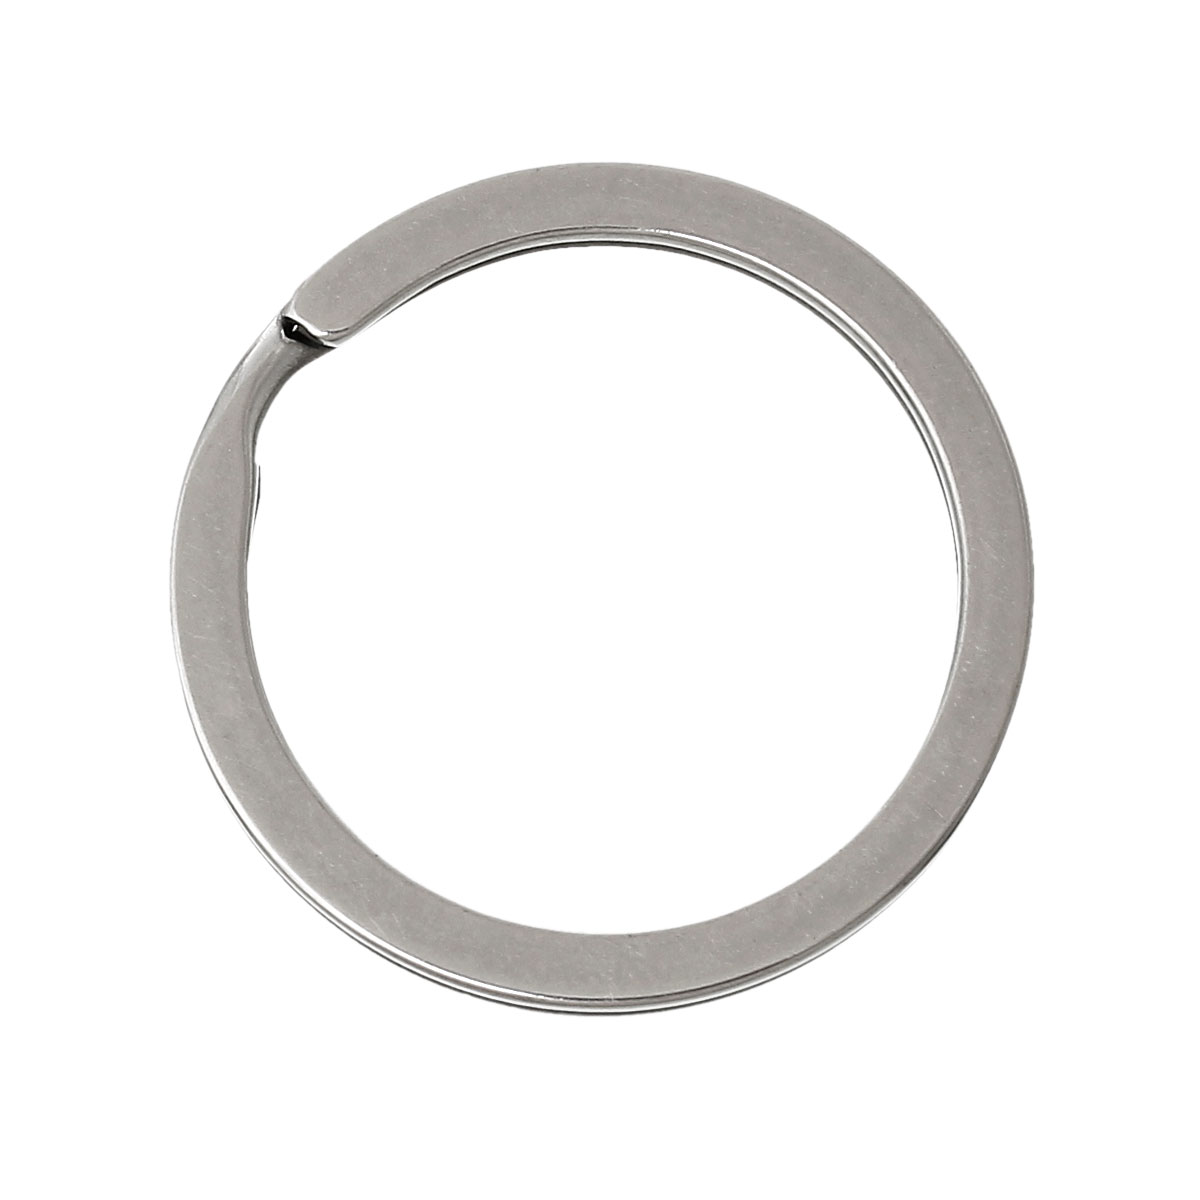 DoreenBeads Stainless Steel Key Chains Key Rings Circle Ring Silver Tone 3.0cm(1 1/8